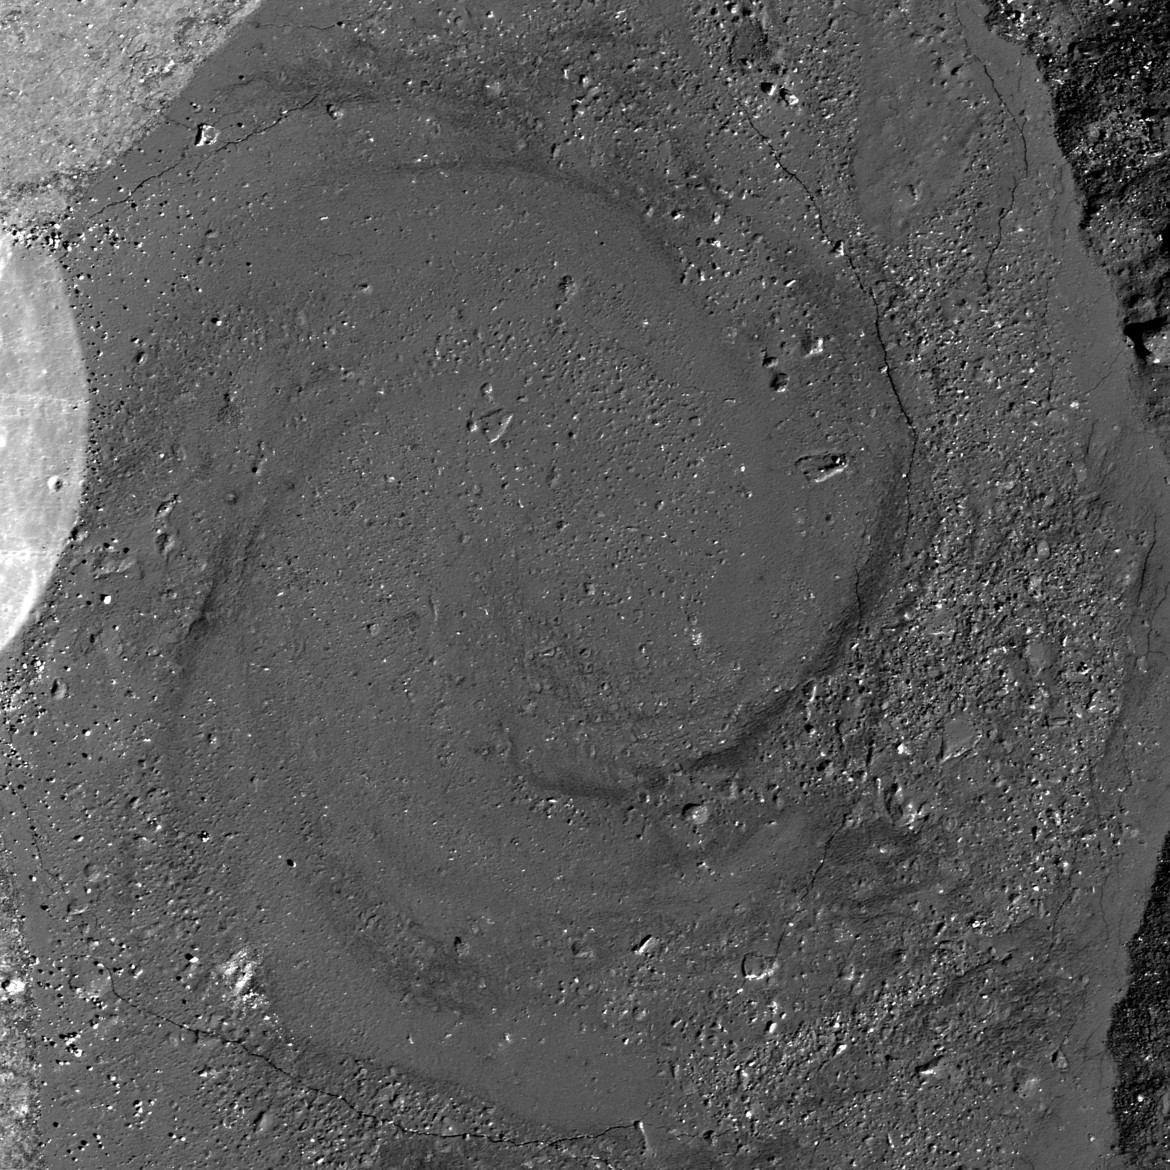 This is not a galaxy, but a spiral swirl of rock frozen in eternity on the Moon. Credit: NASA/GSFC/Arizona State University